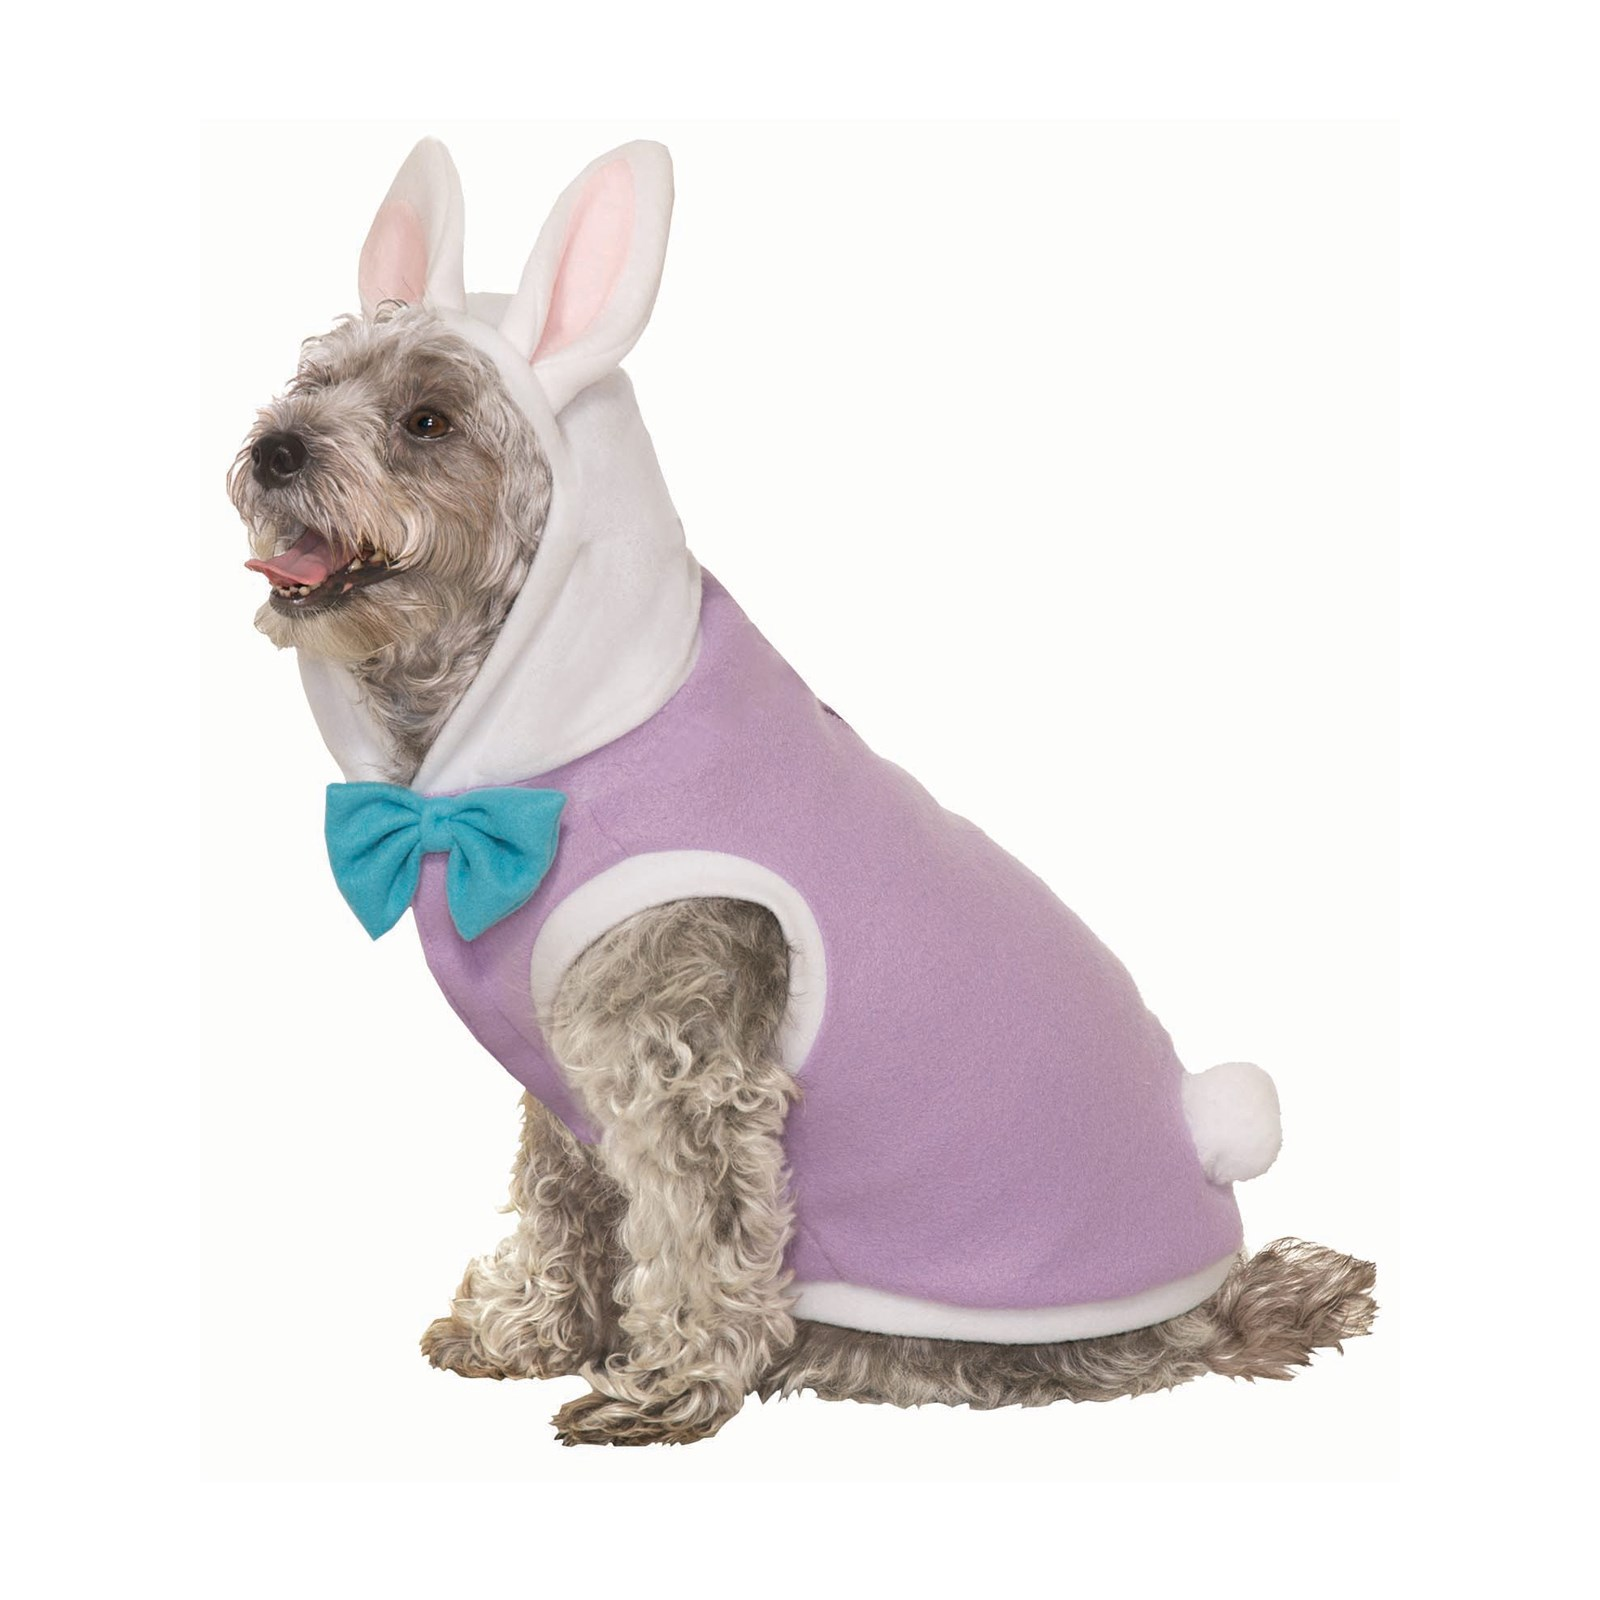 Easter Rabbit Costume for Pets